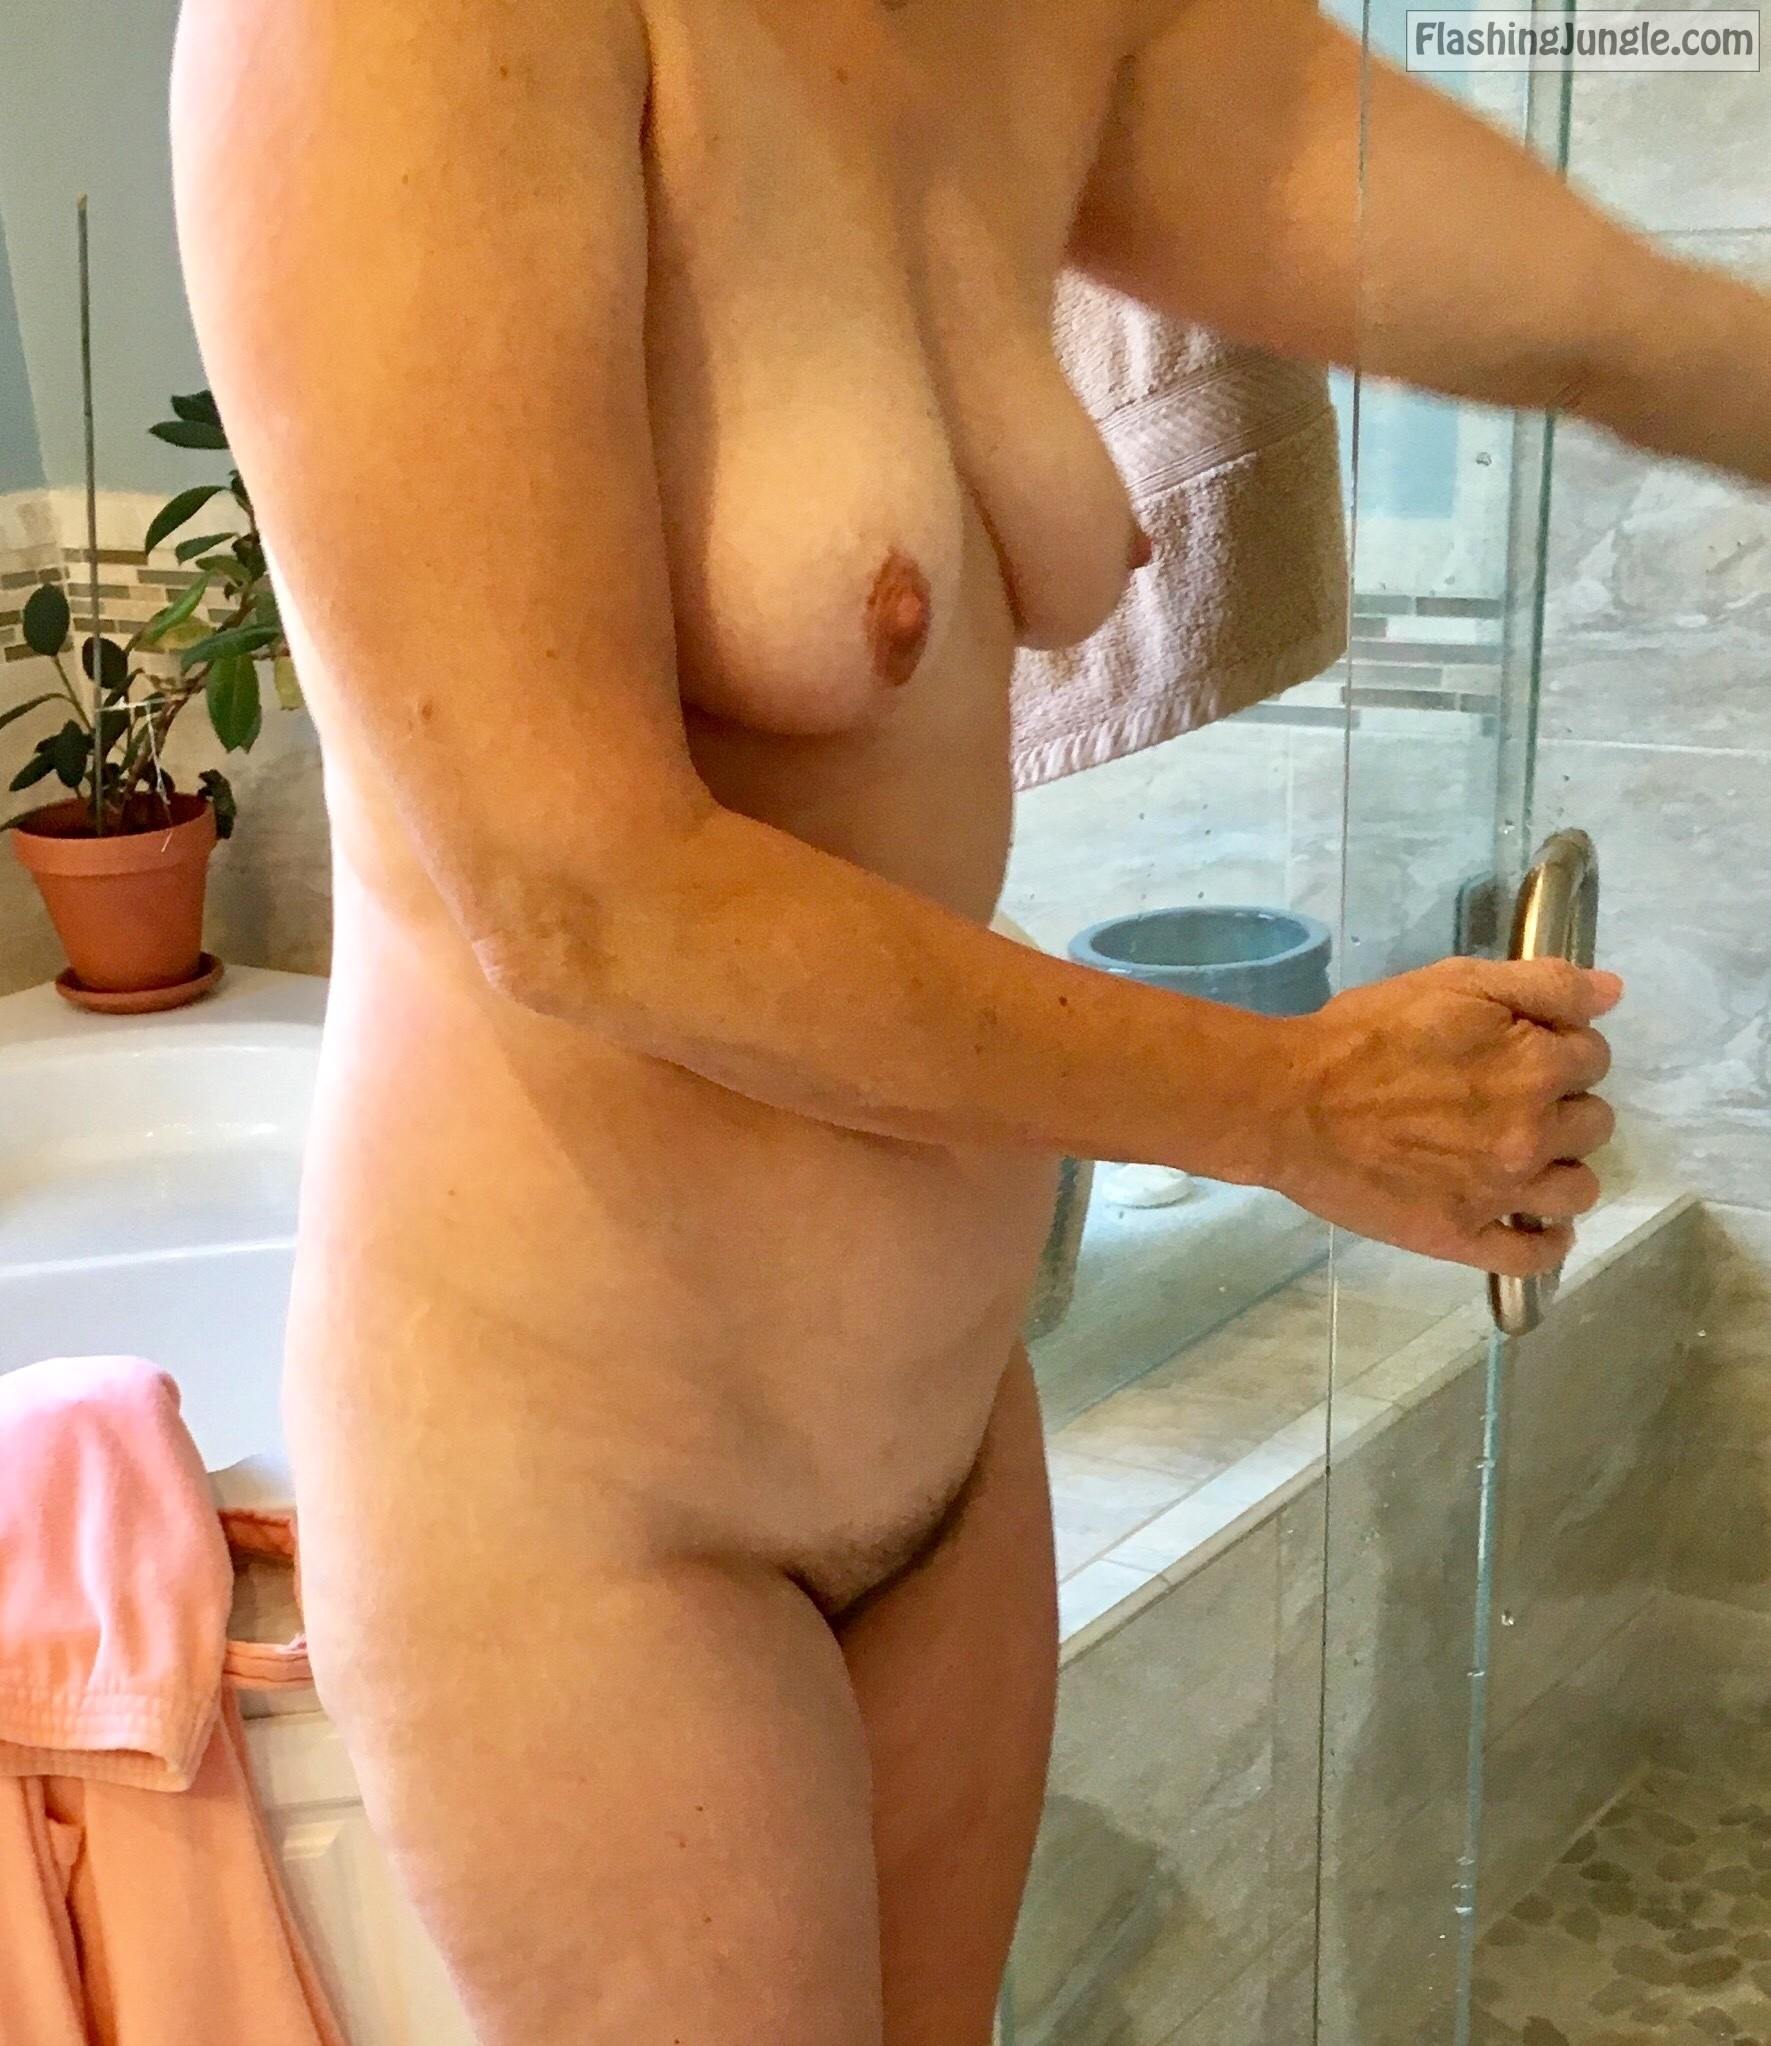 Saggy tits milf bathroom